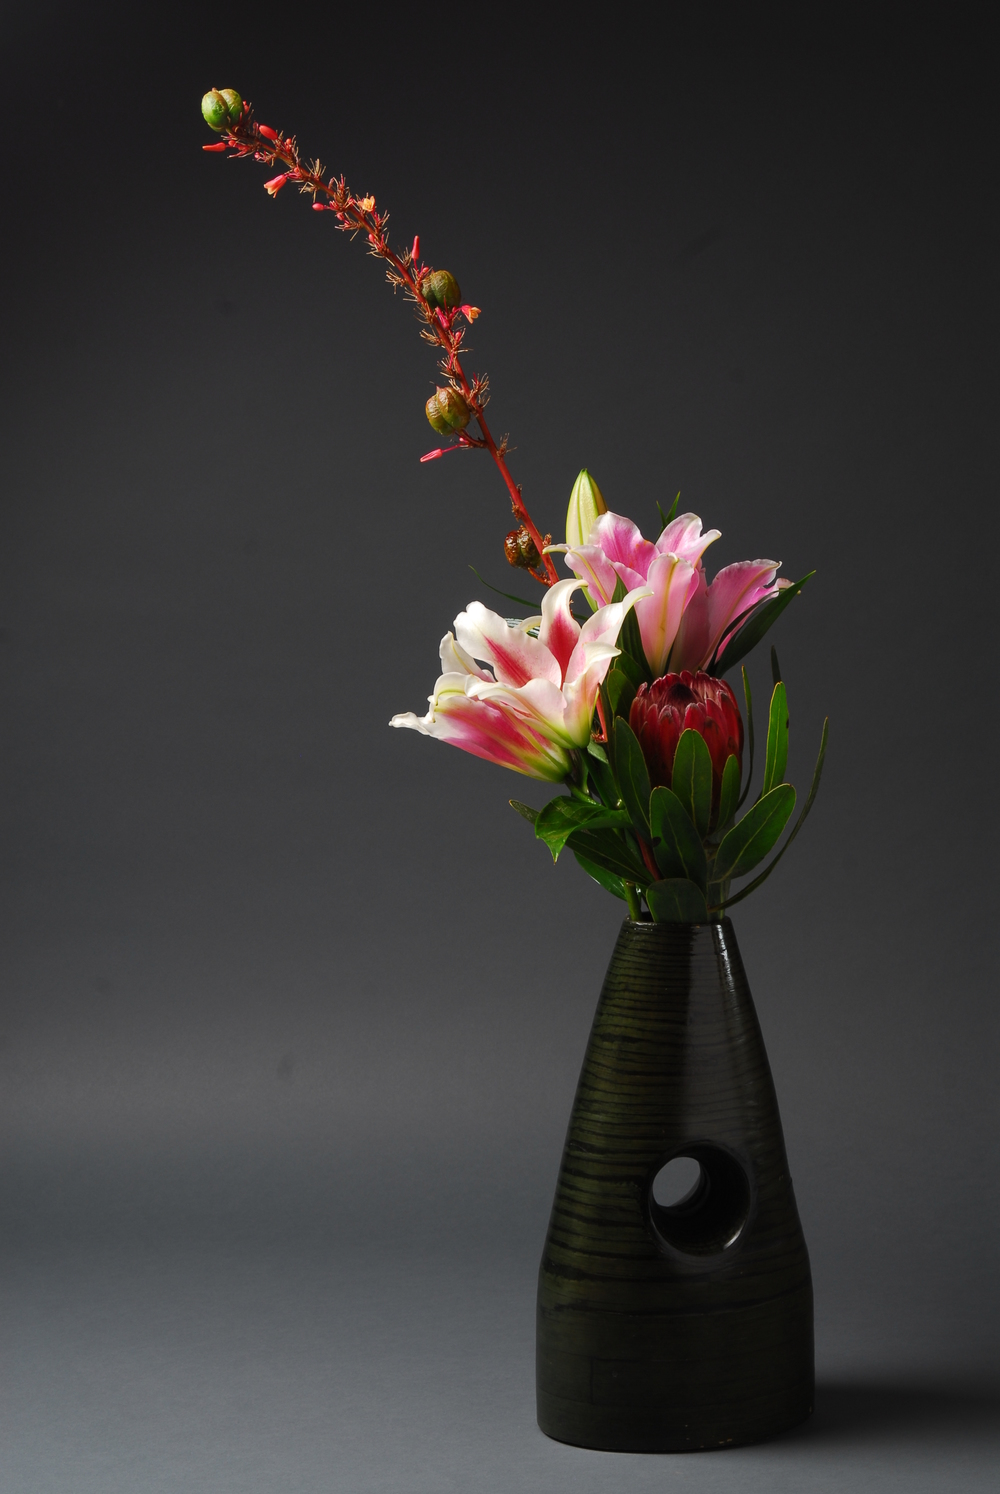 Green stripped vase with hole it the center filled with tall stem of Yucca, star gazer lilies and pink mink protea